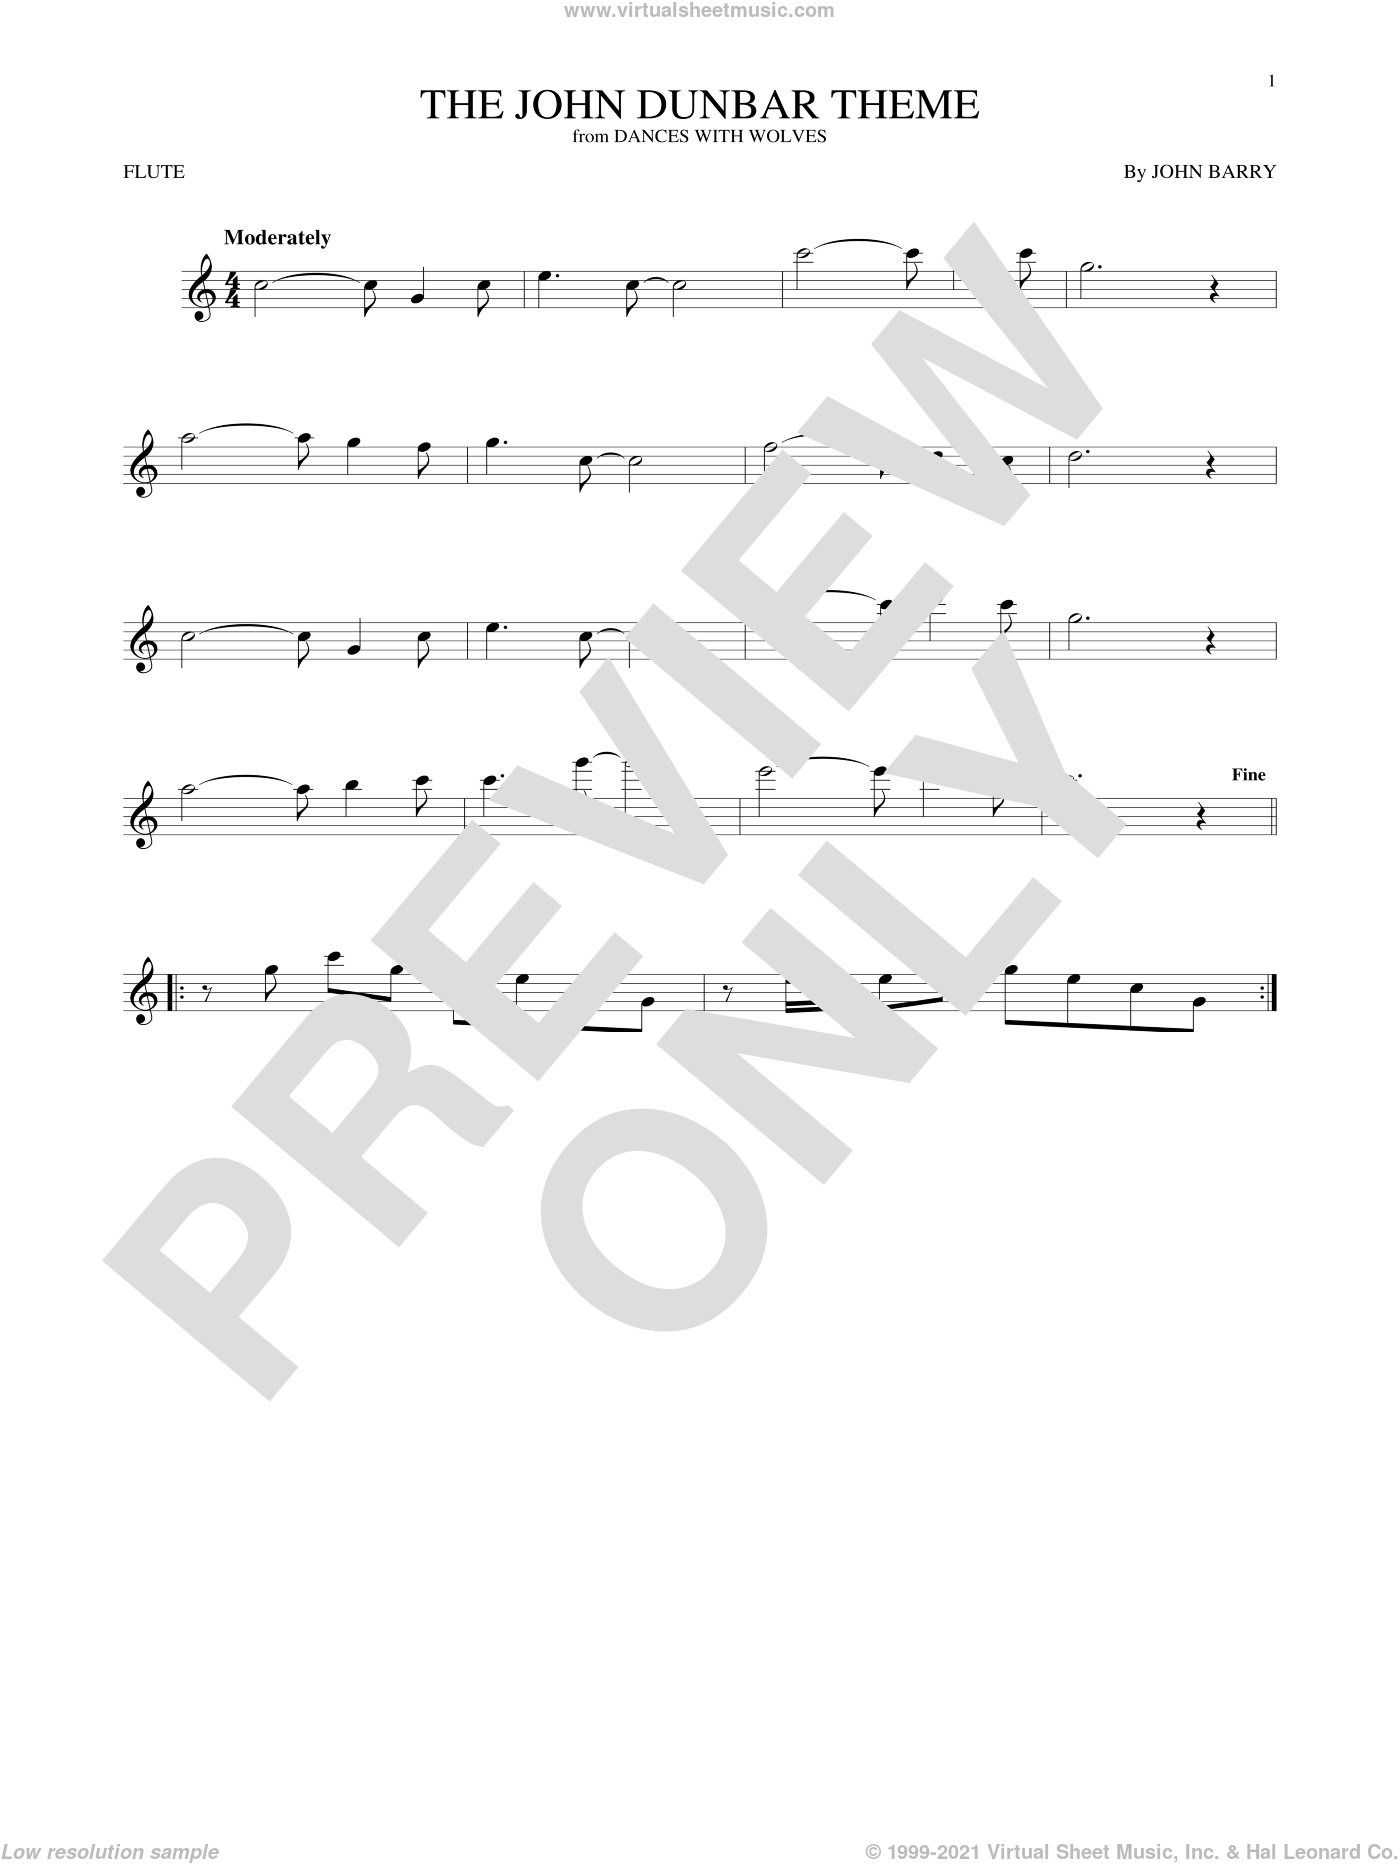 The John Dunbar Theme sheet music for flute solo by John Barry. Score Image Preview.